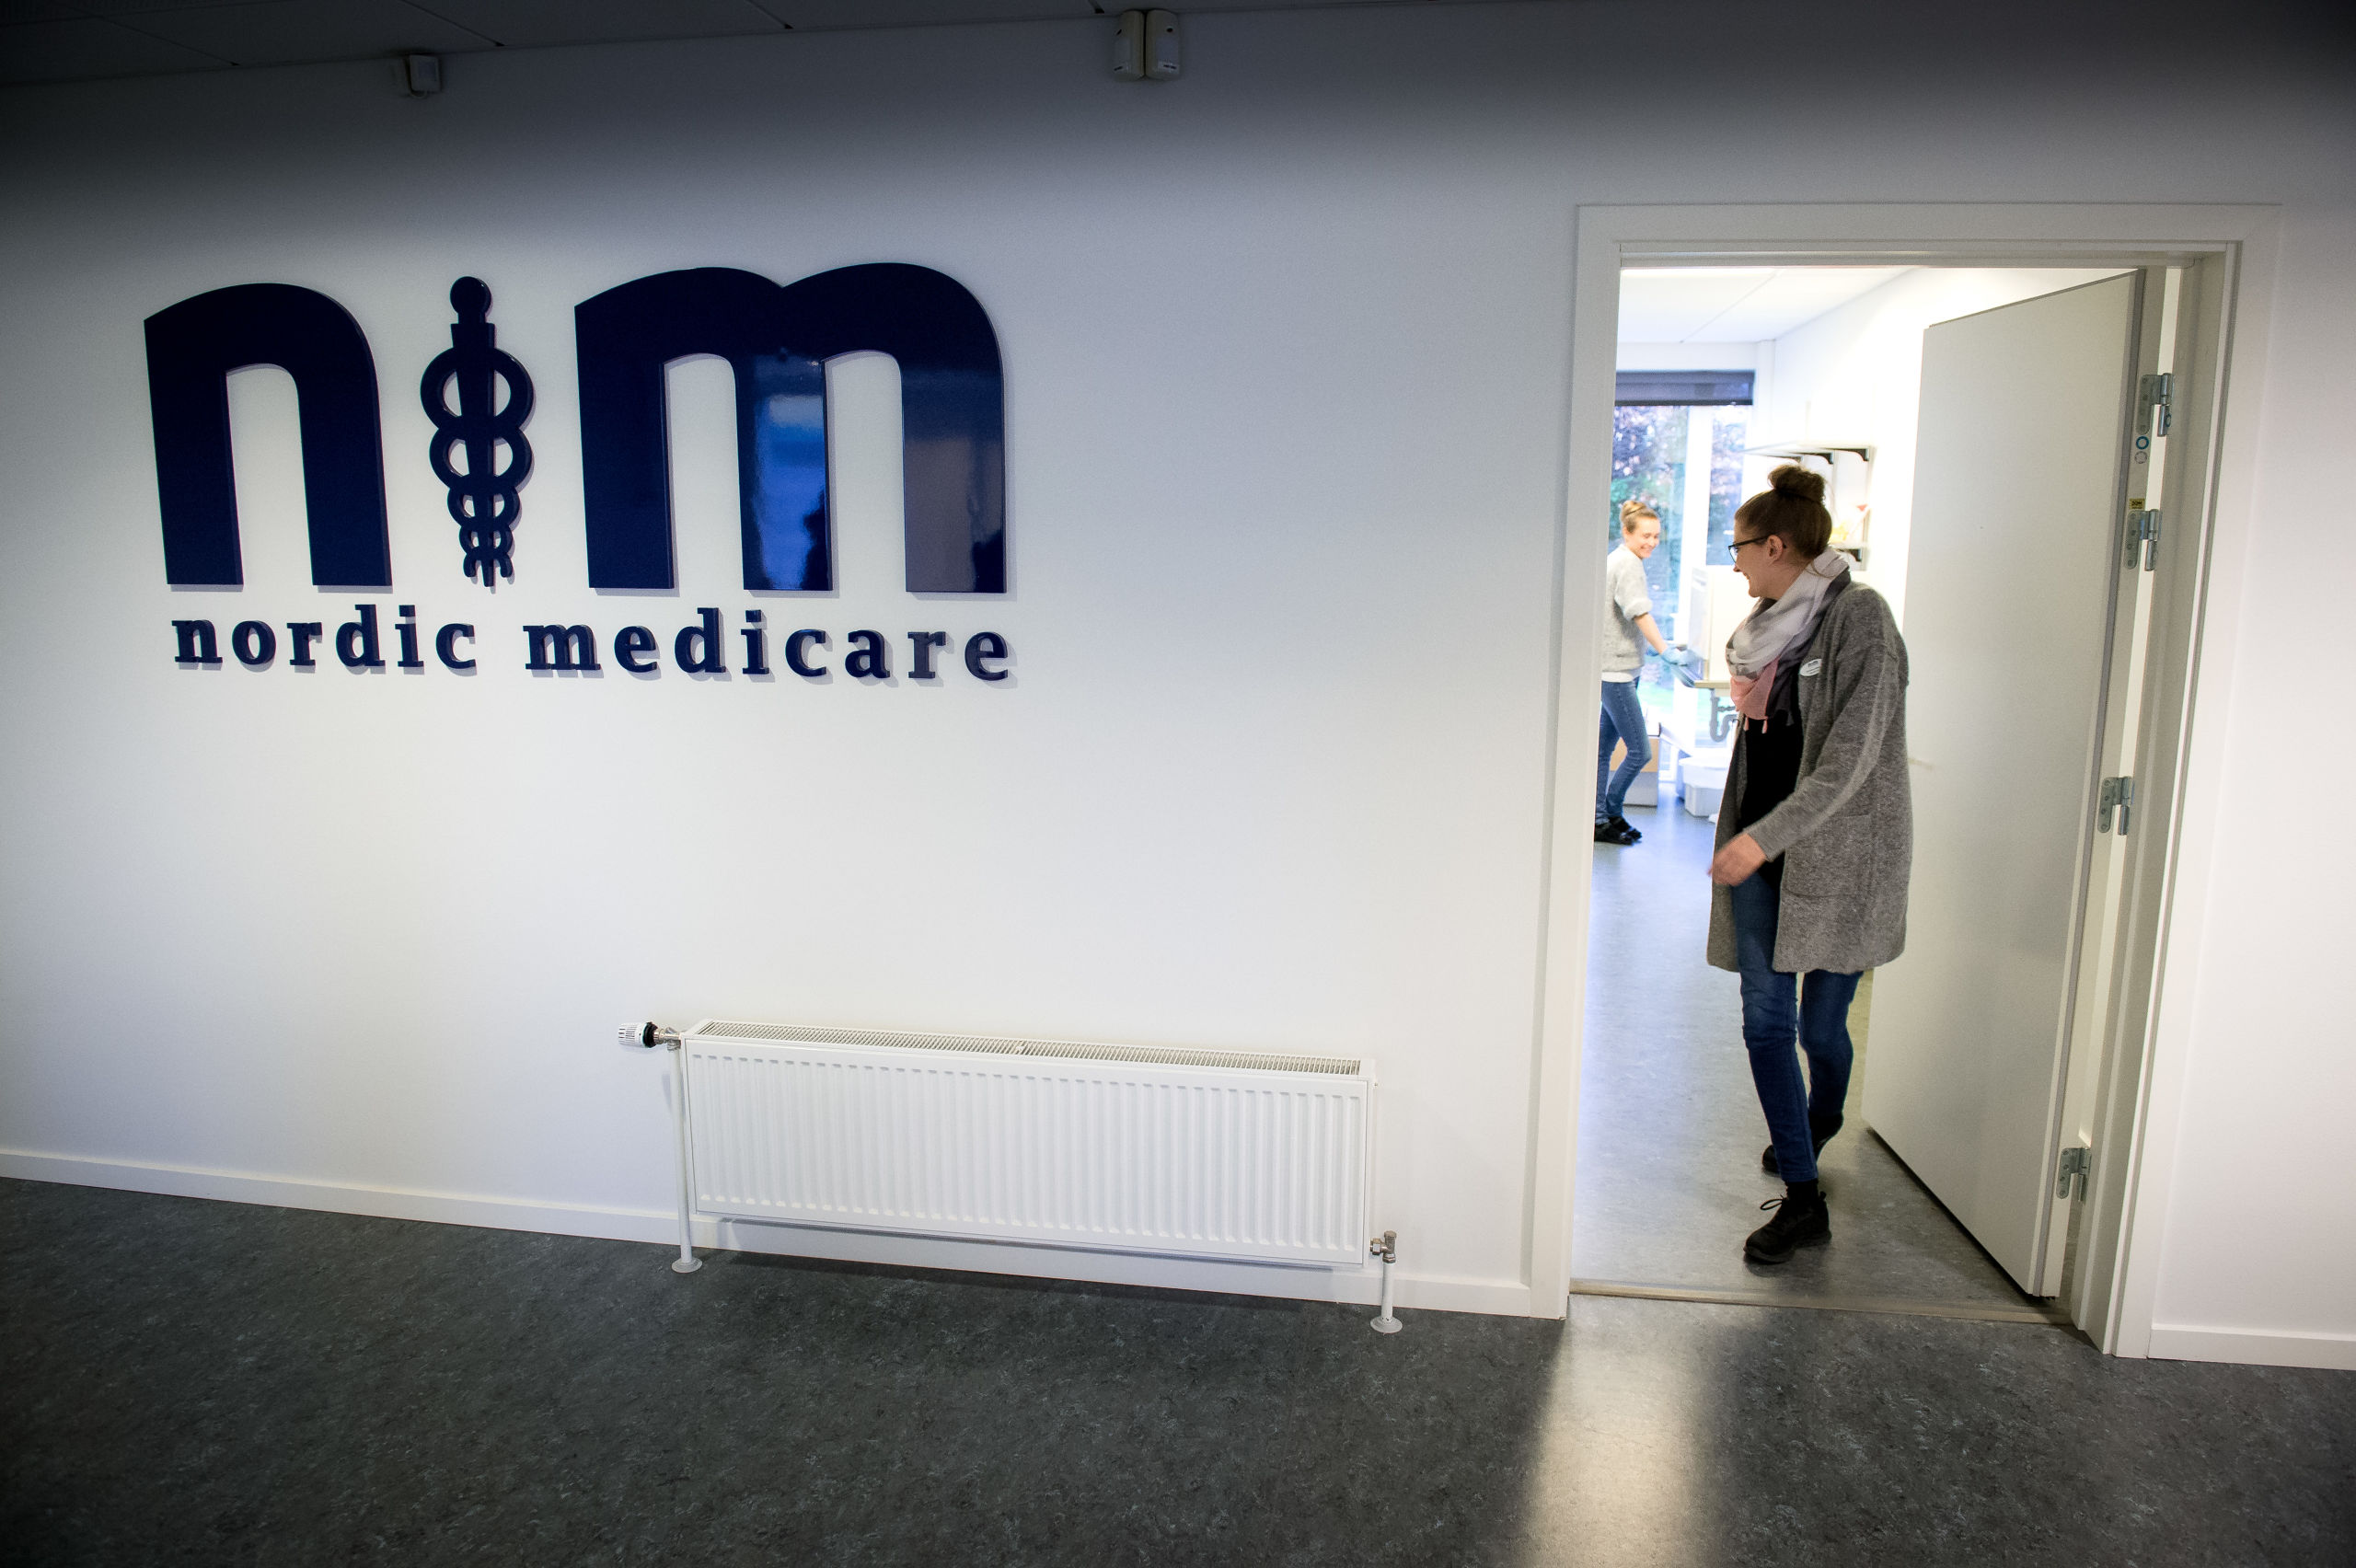 nordic medicare pandrup